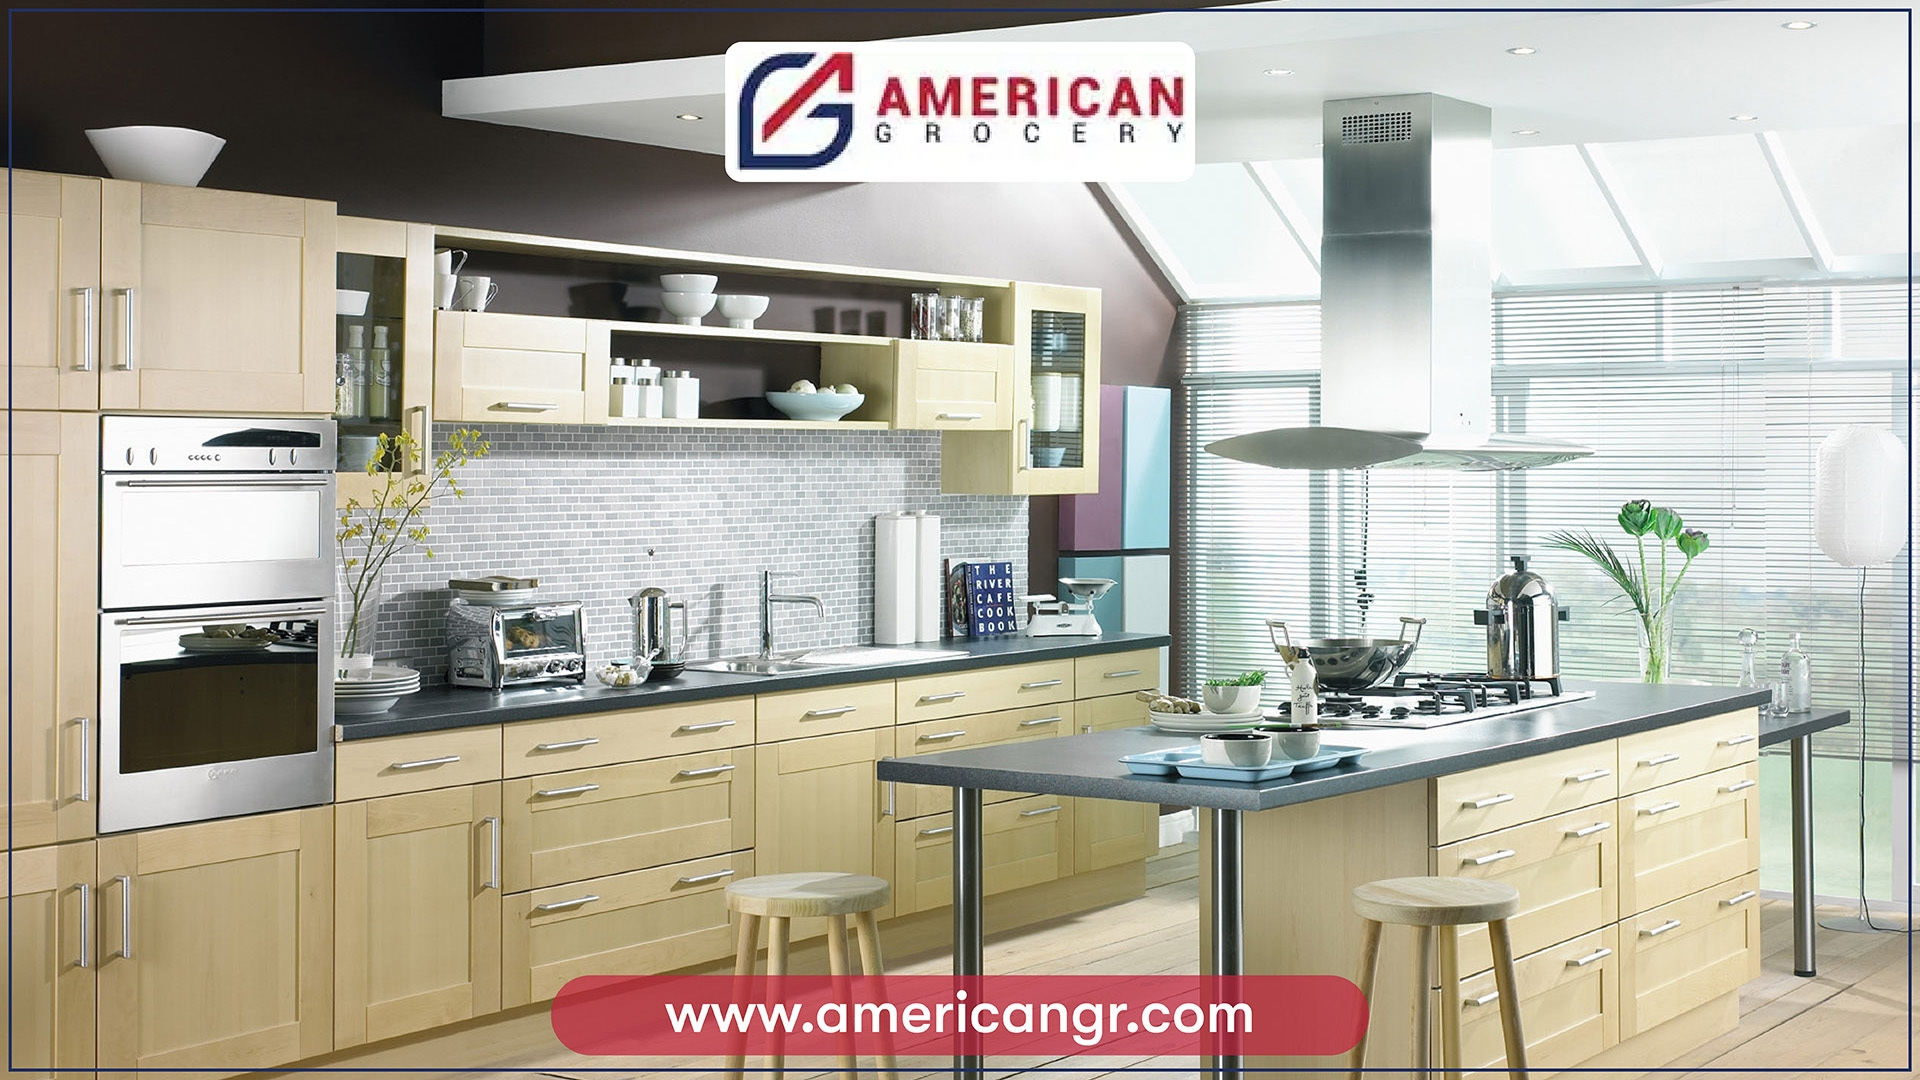 American Grocery (@americangrocery) Cover Image